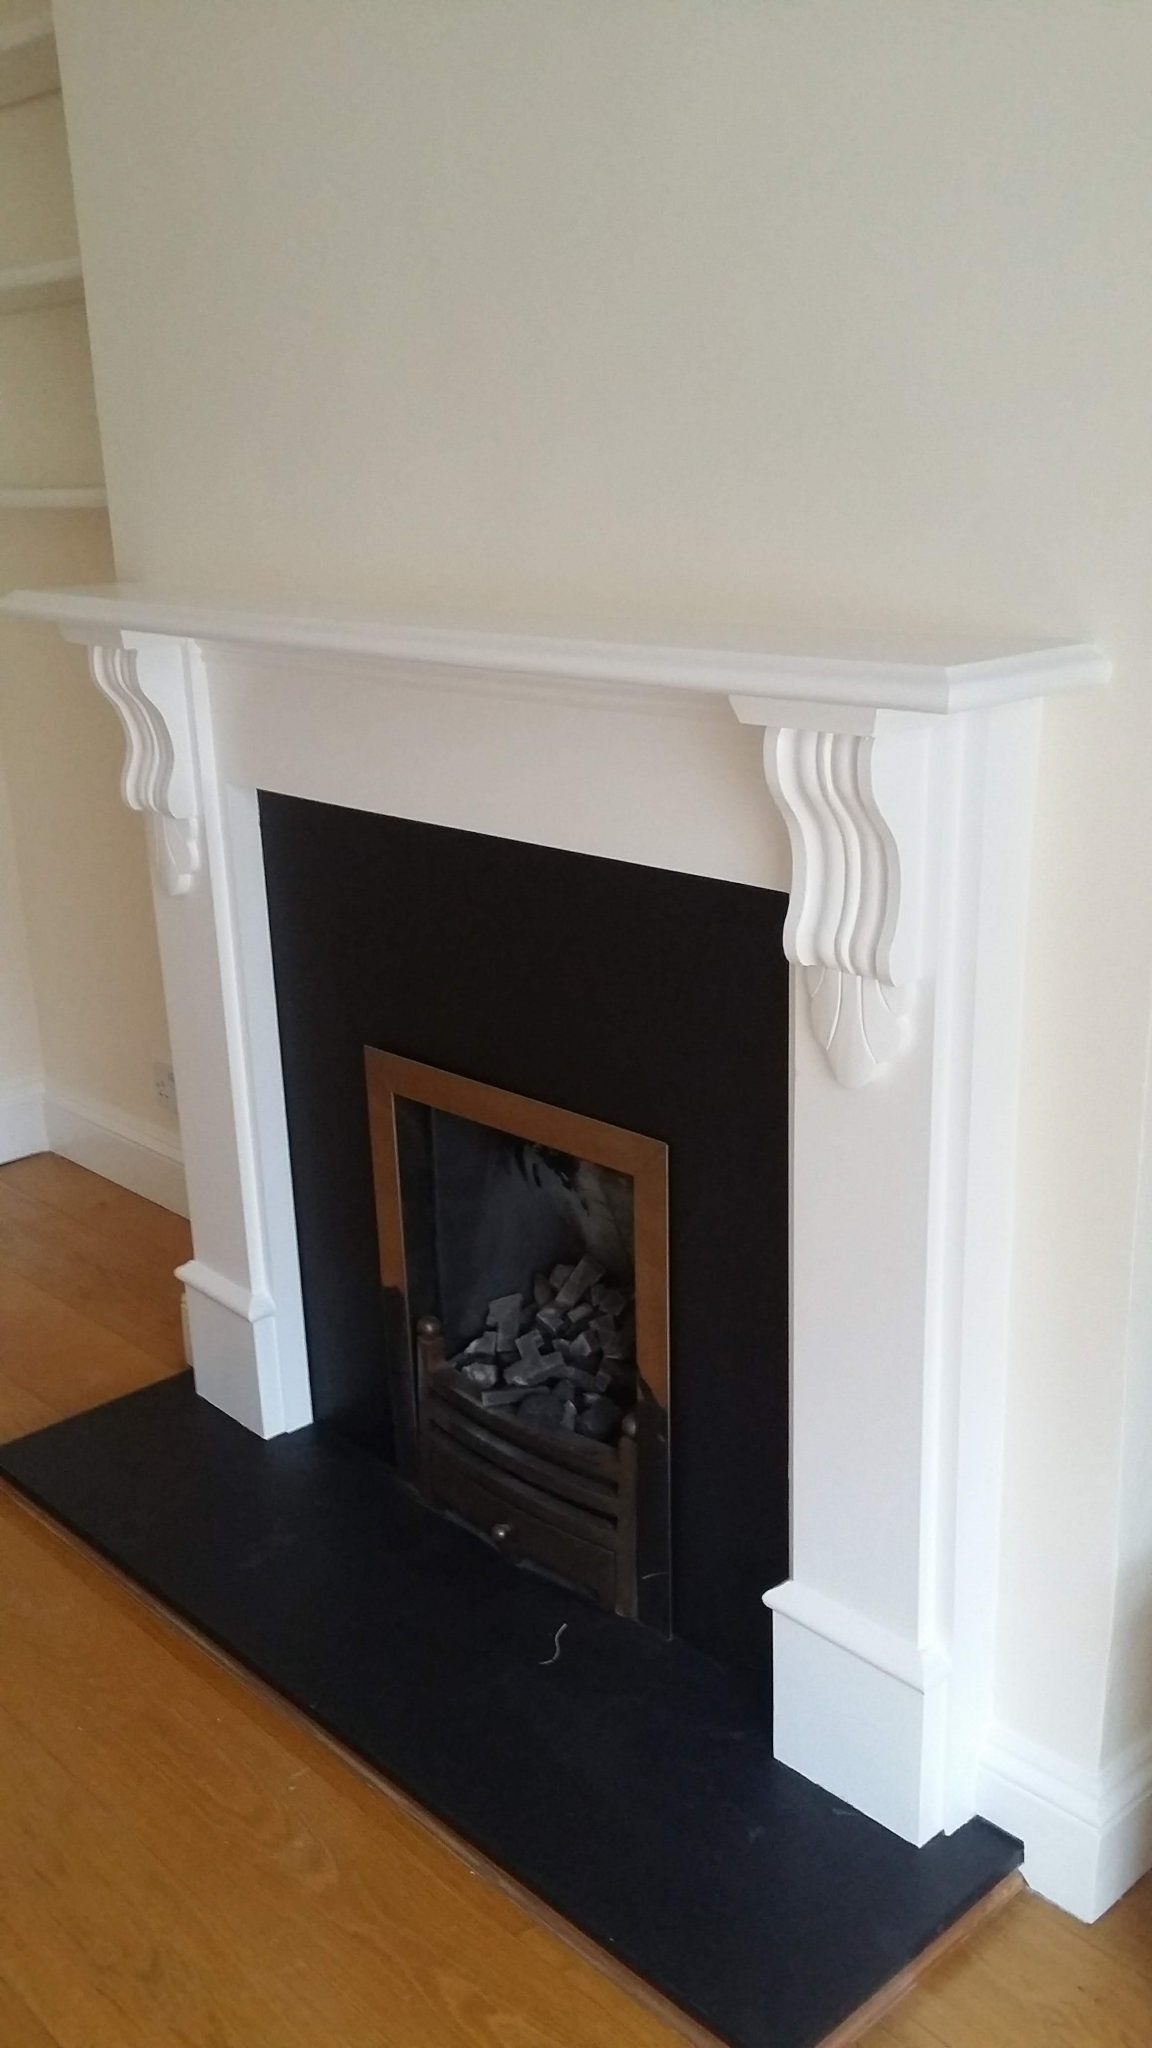 Refinishing A Fireplace Surround How, How To Sand A Wooden Fire Surround